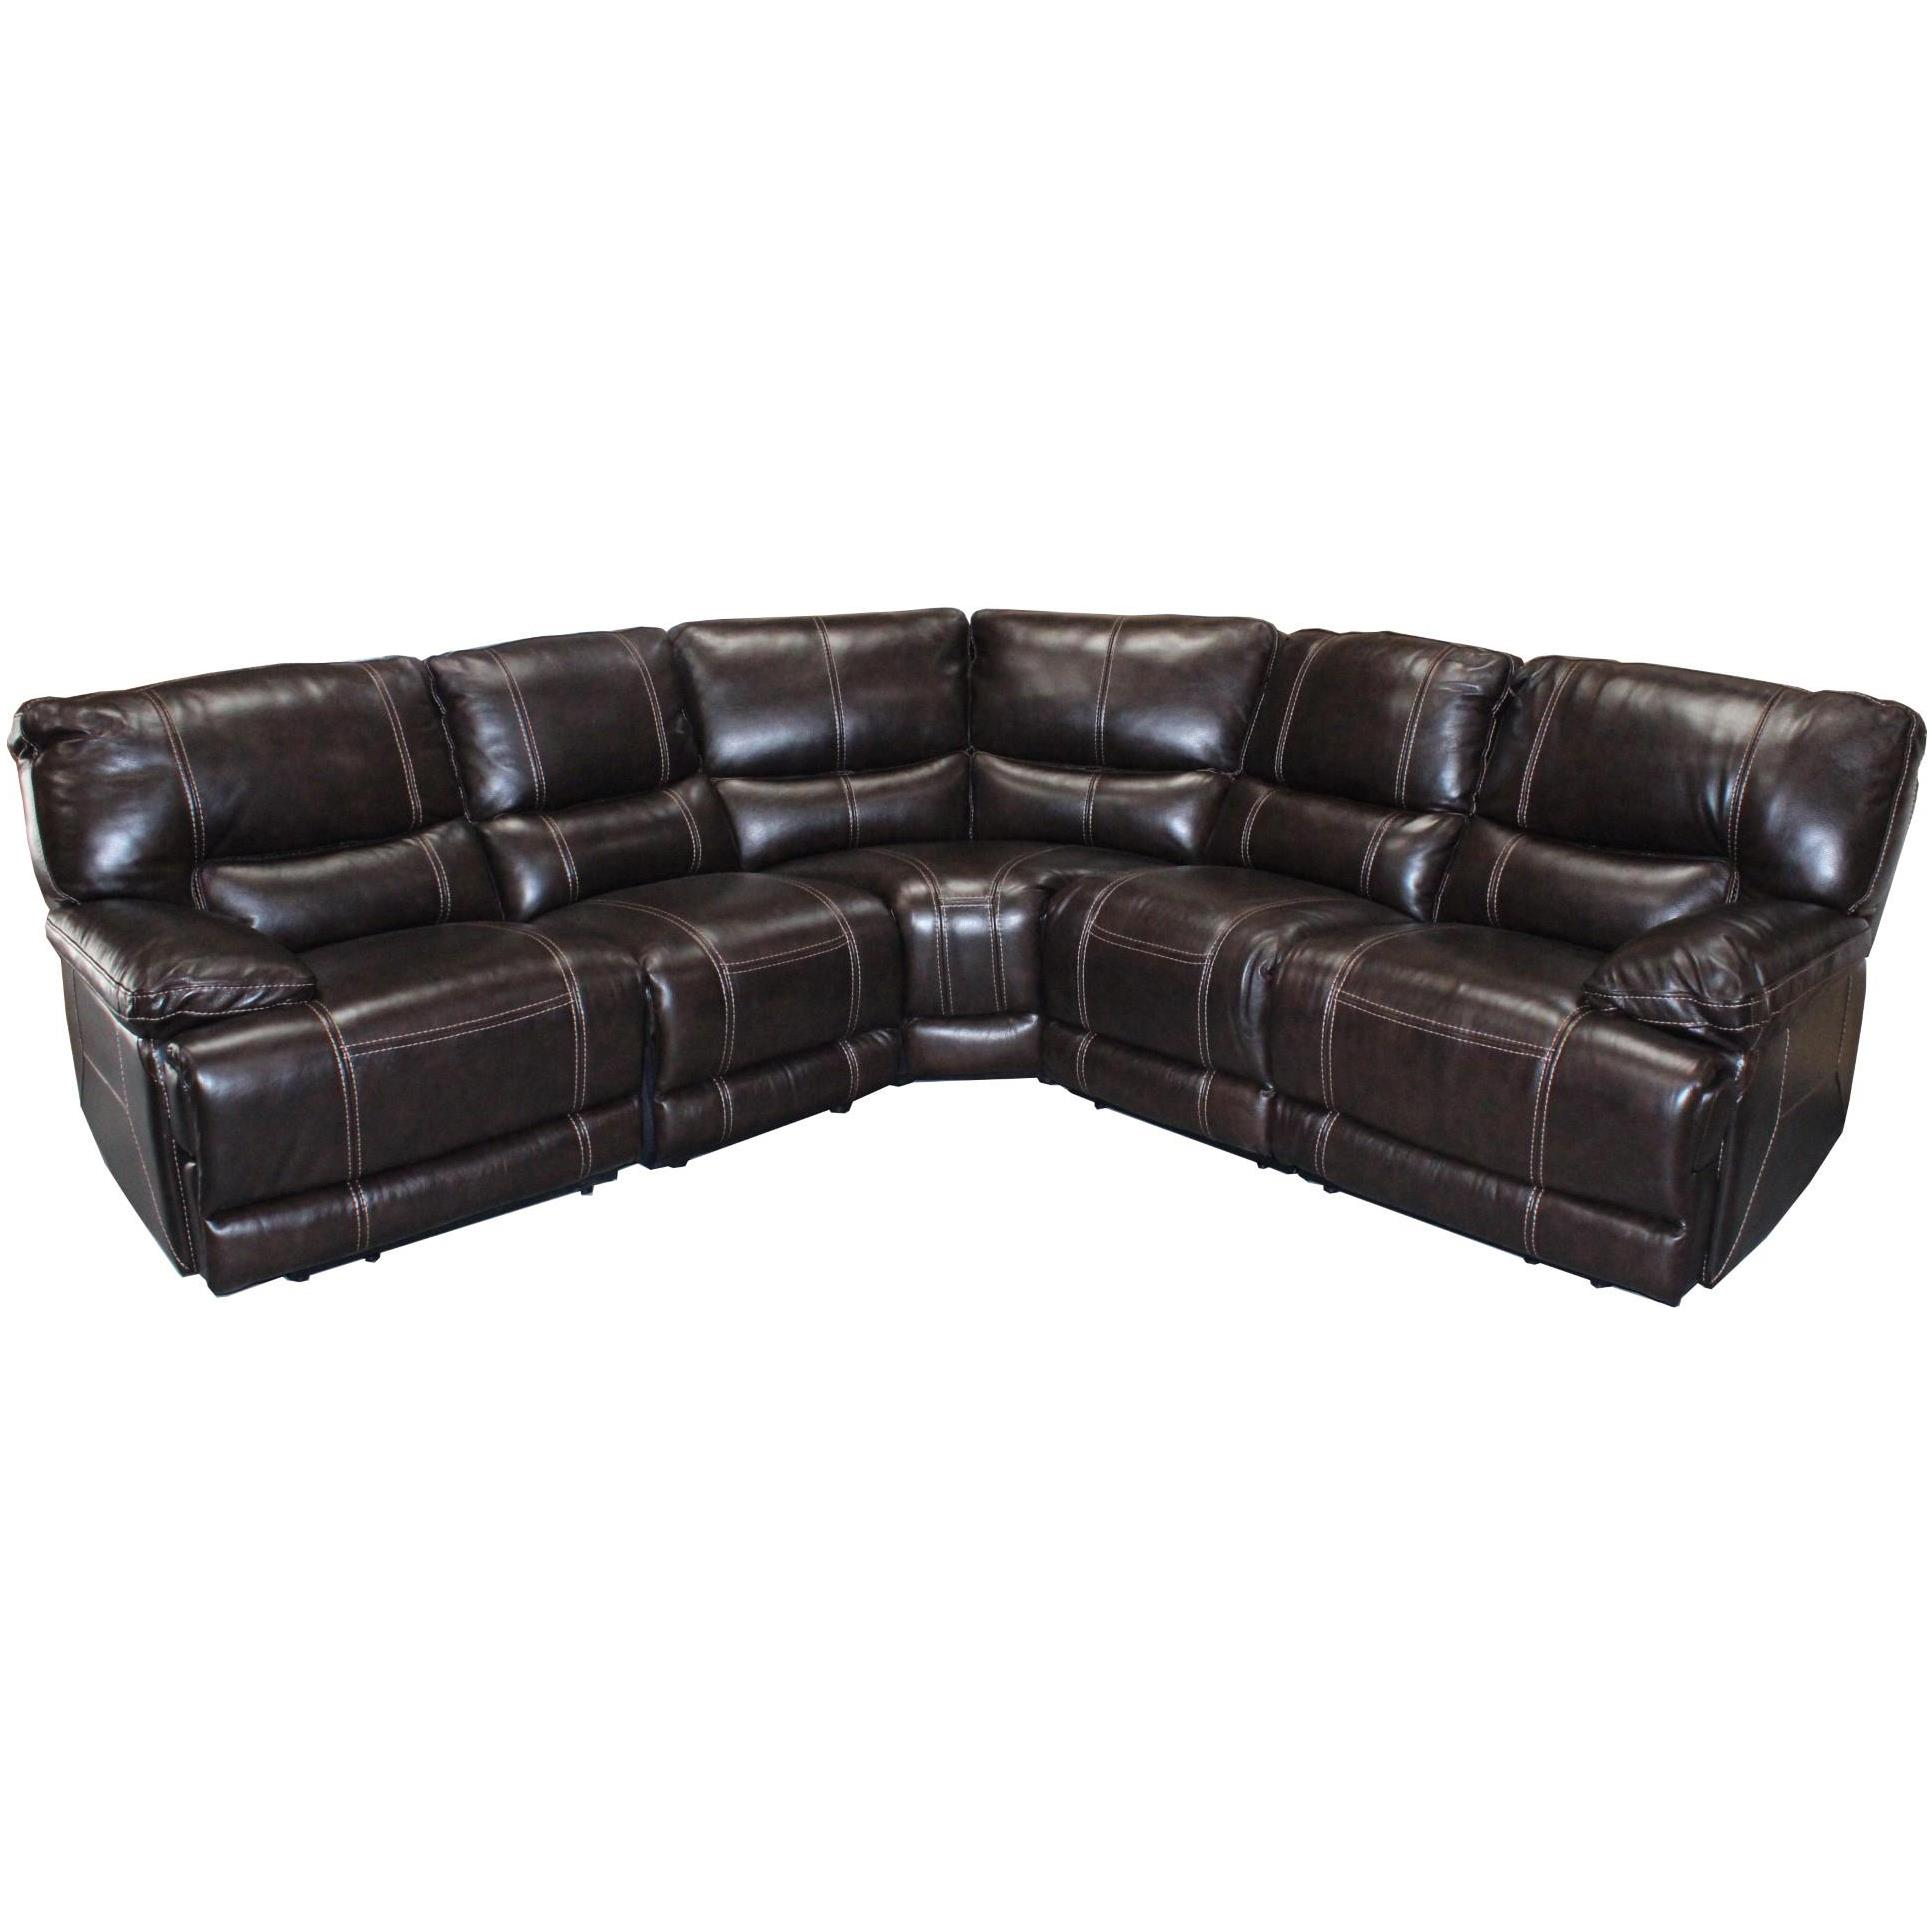 Parker Living Socrates Casual Sectional - Item Number: MSOC-811LP+810P-850+840+811RP-MI